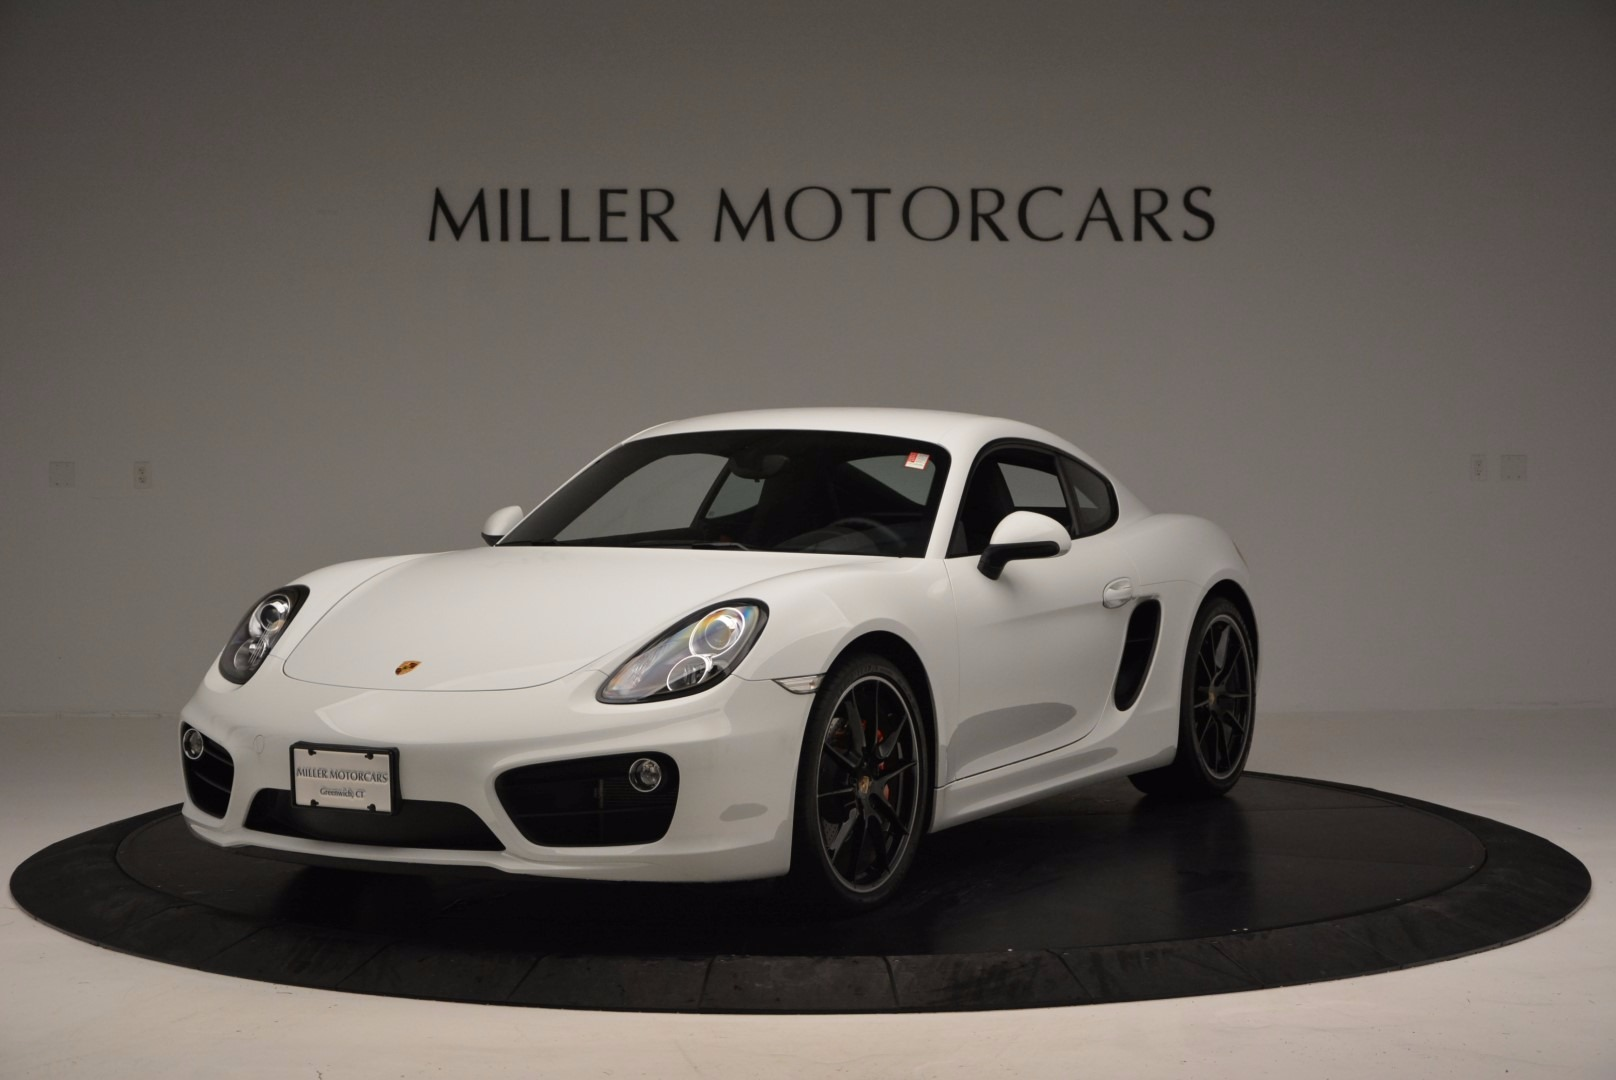 Used 2014 Porsche Cayman S for sale Sold at Pagani of Greenwich in Greenwich CT 06830 1